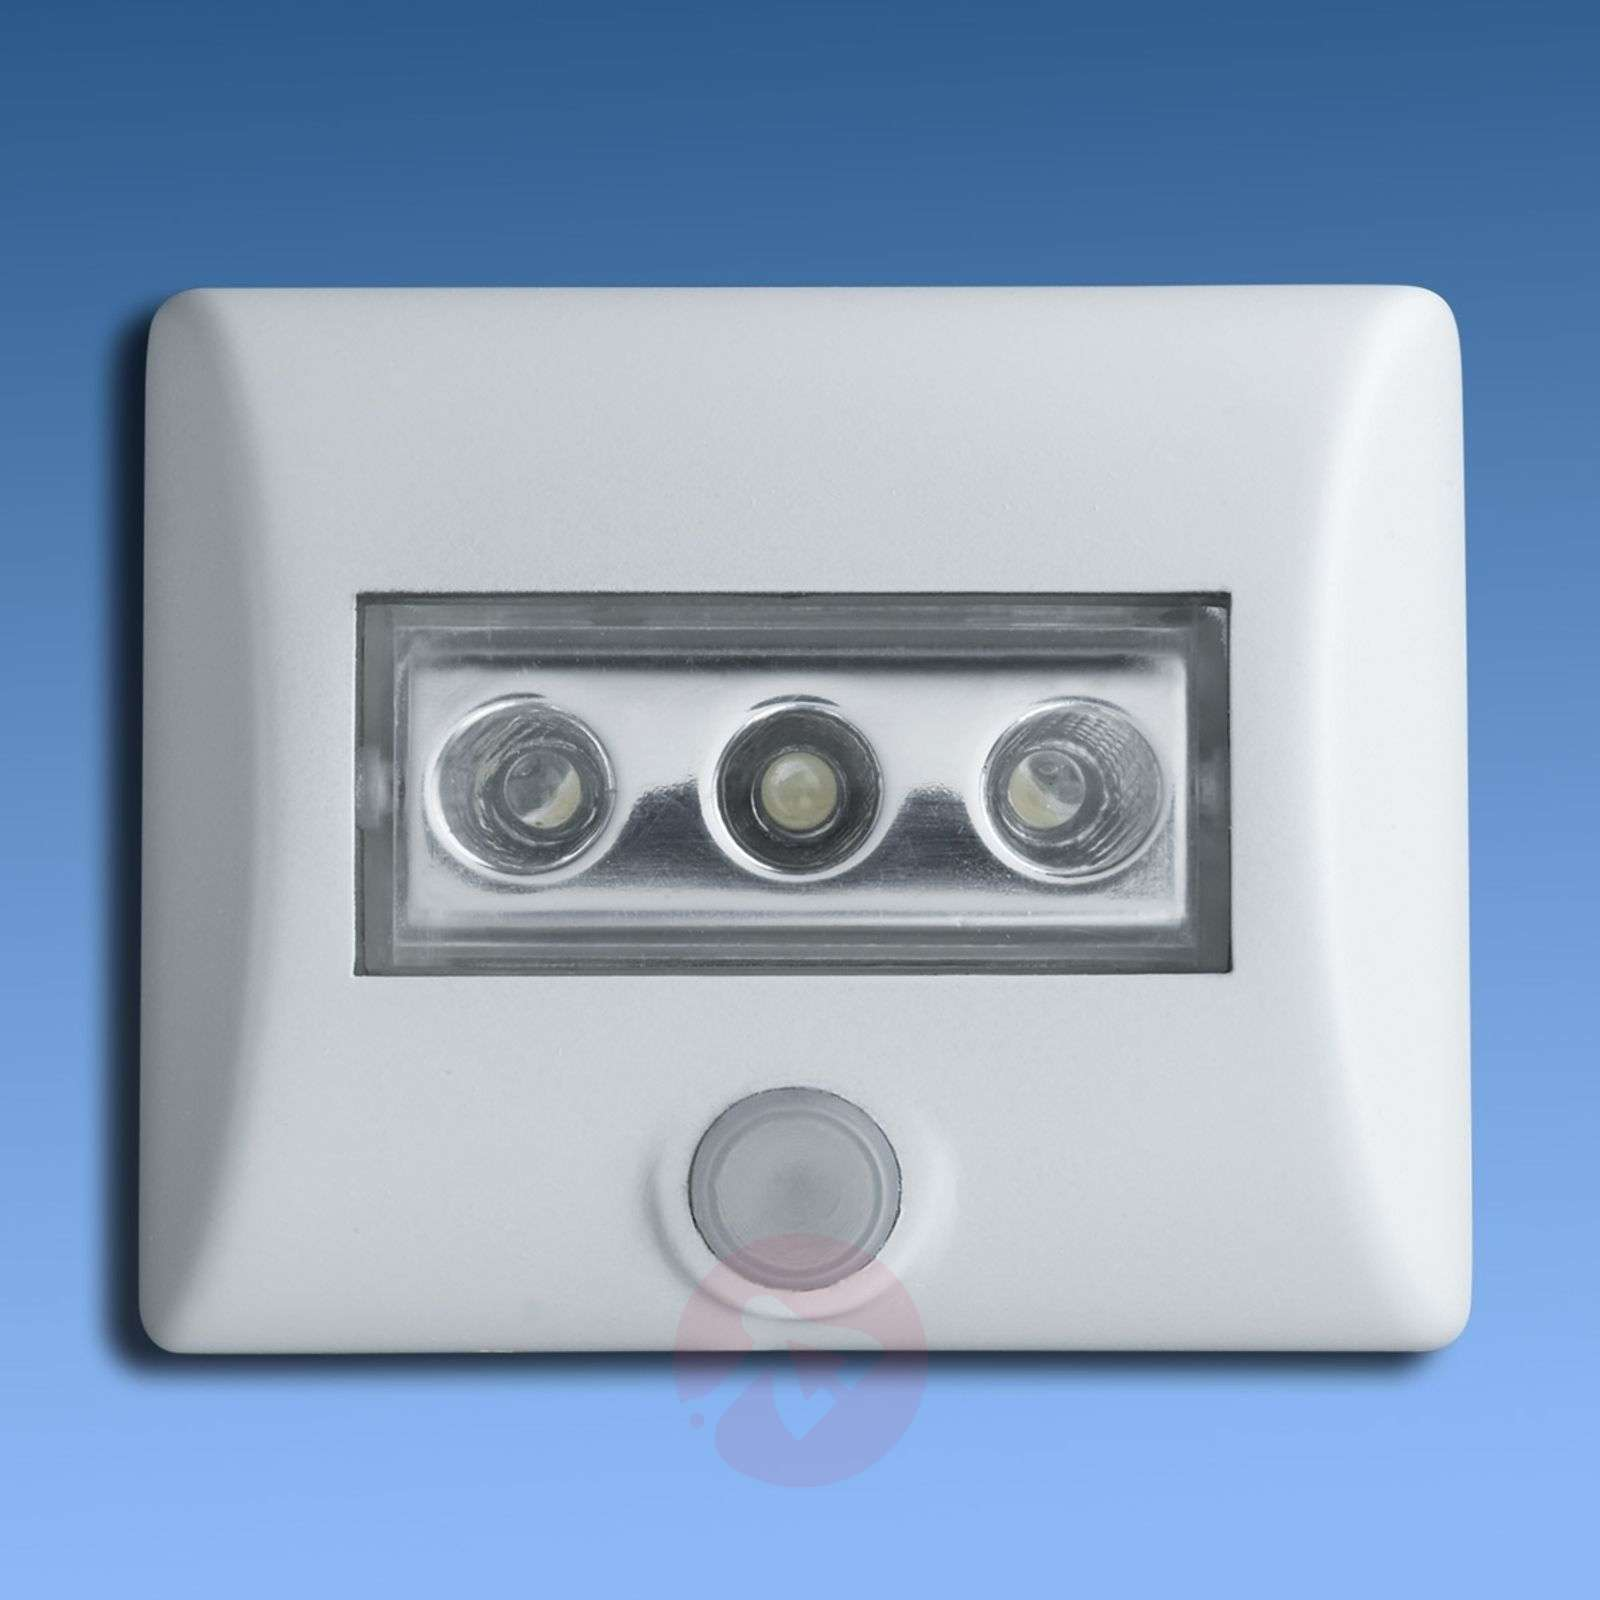 Nightlux led-nachtlampje met sensor-7261058X-01